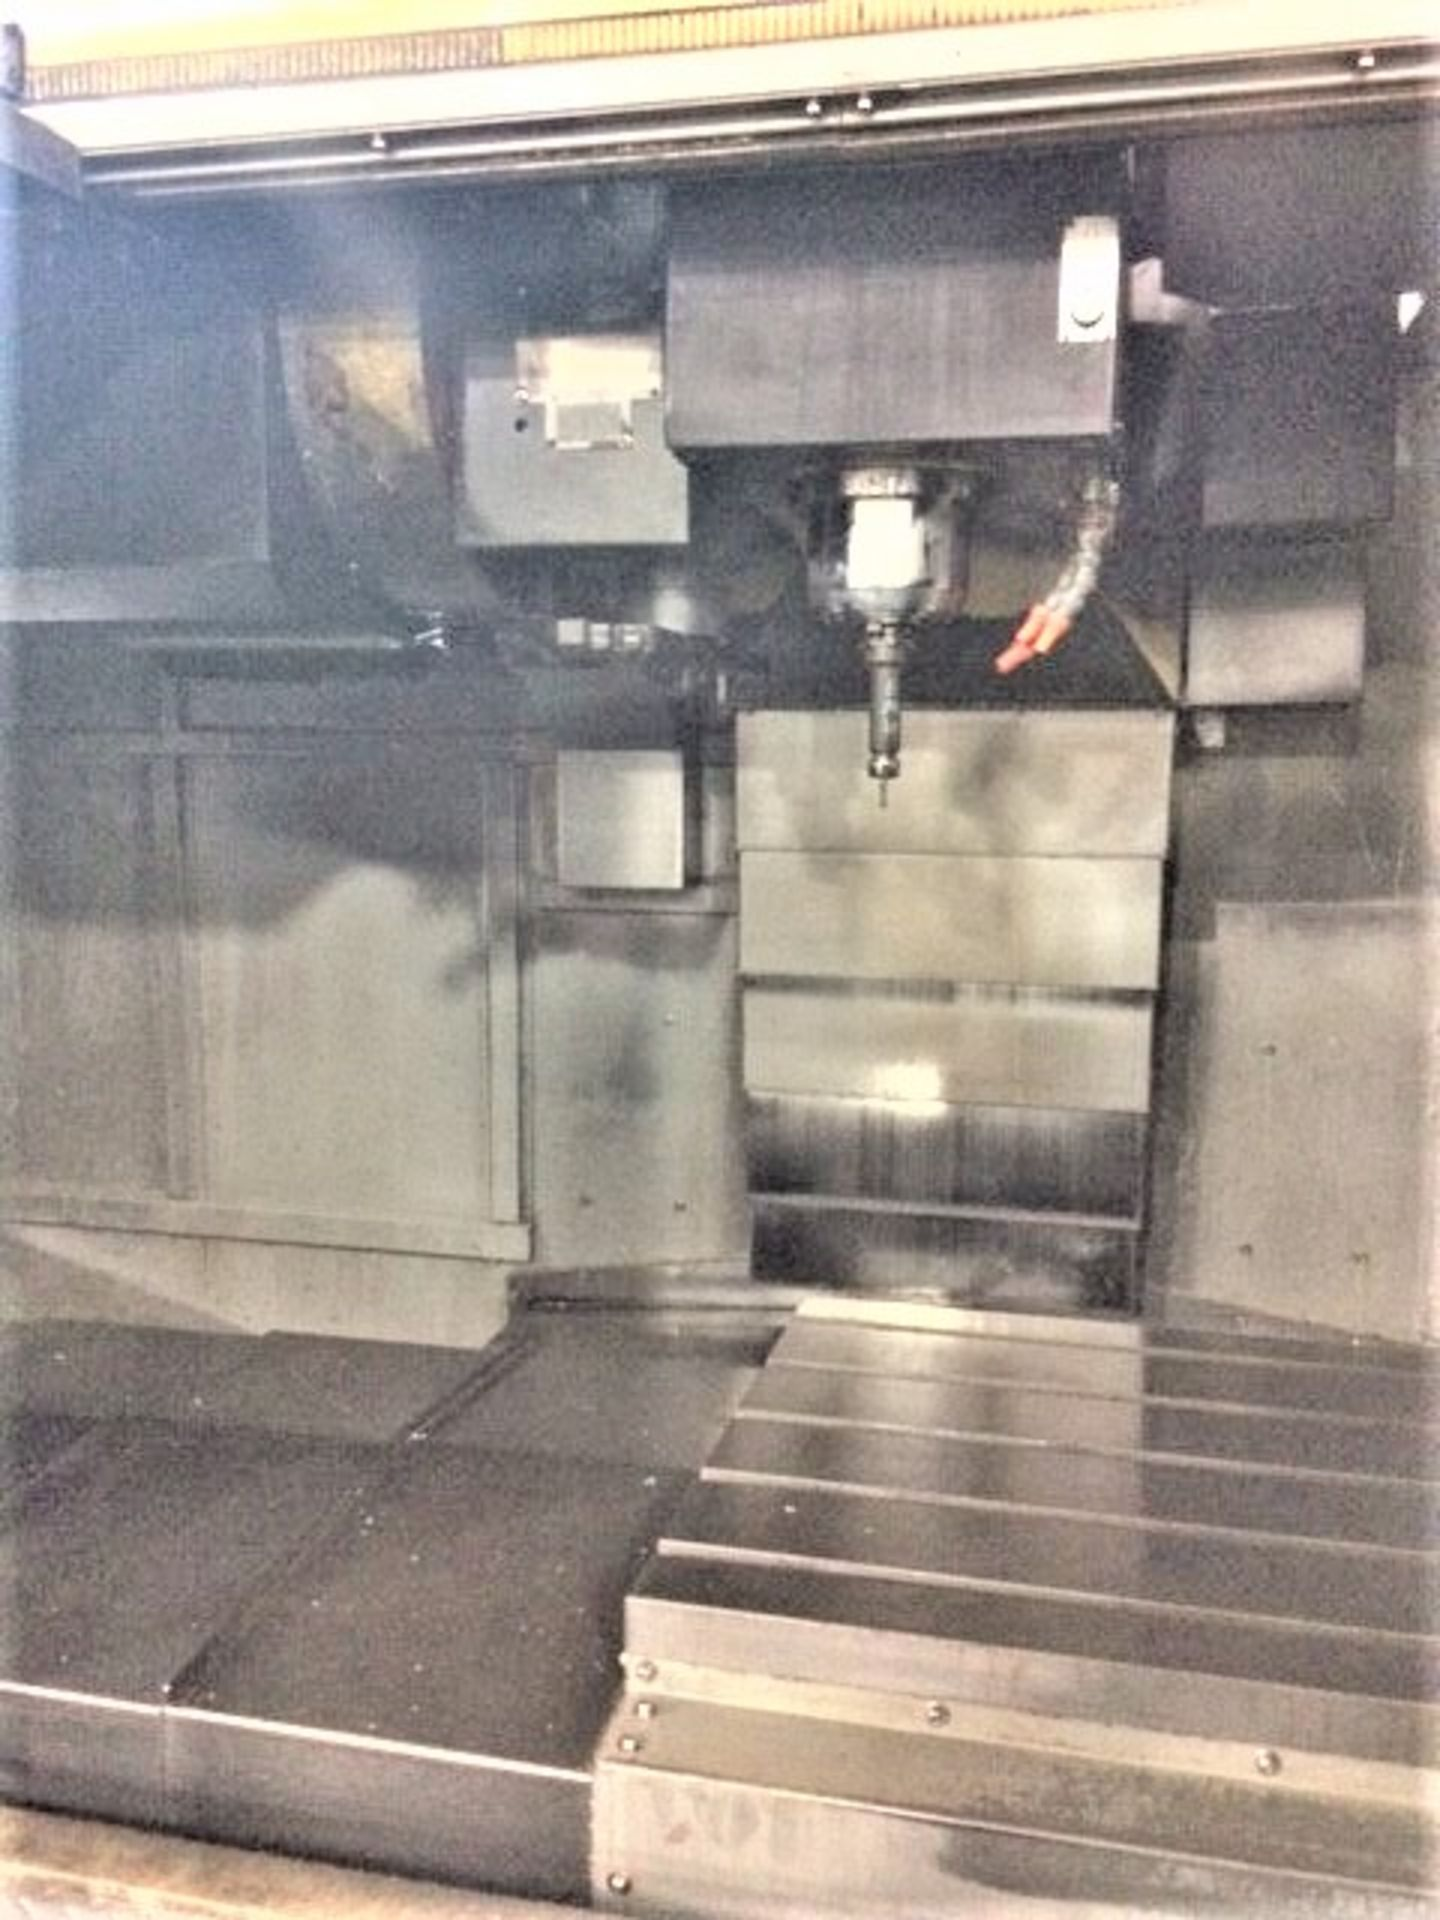 Lot 42 - Toyoda FV-1365 CNC Vertical Machining Center, S/N 11048, New 2011